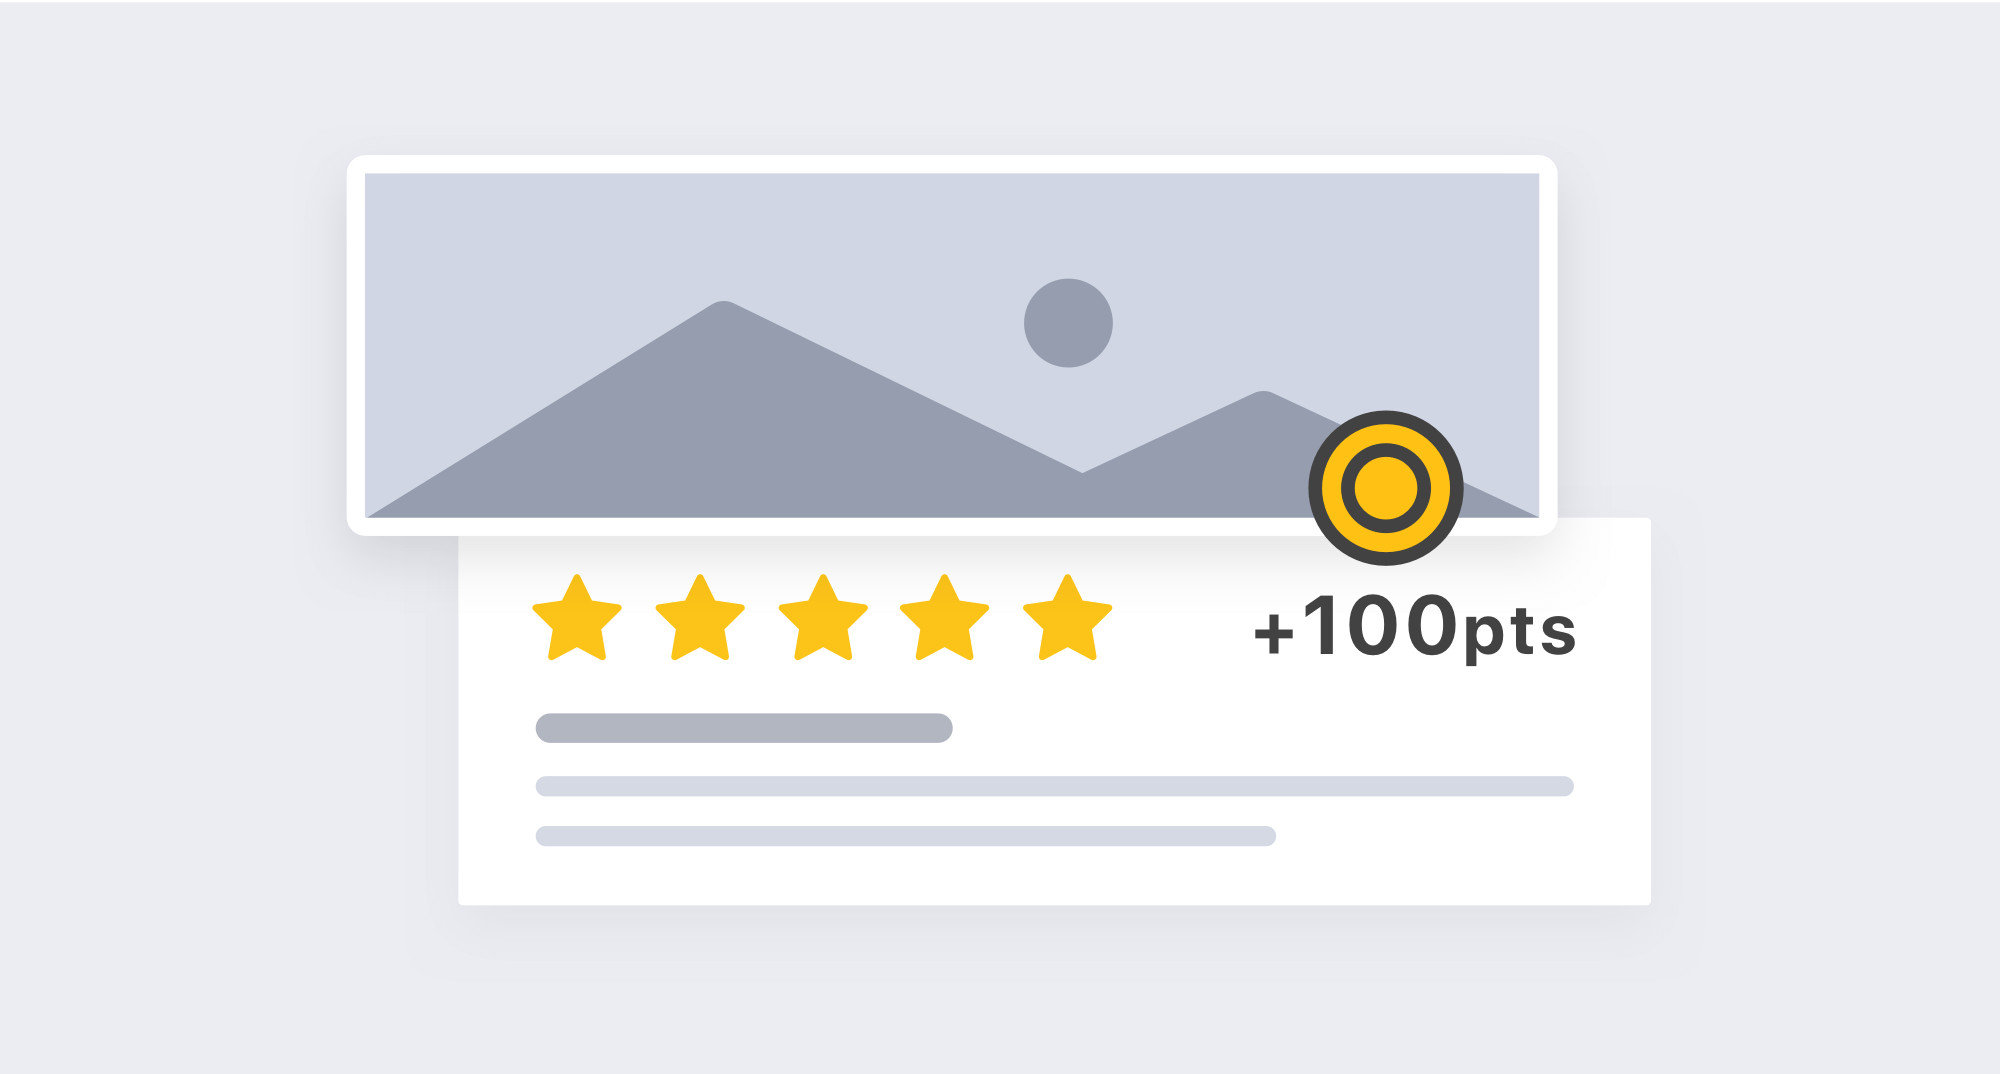 earning points for photo reviews with Smile and Loox